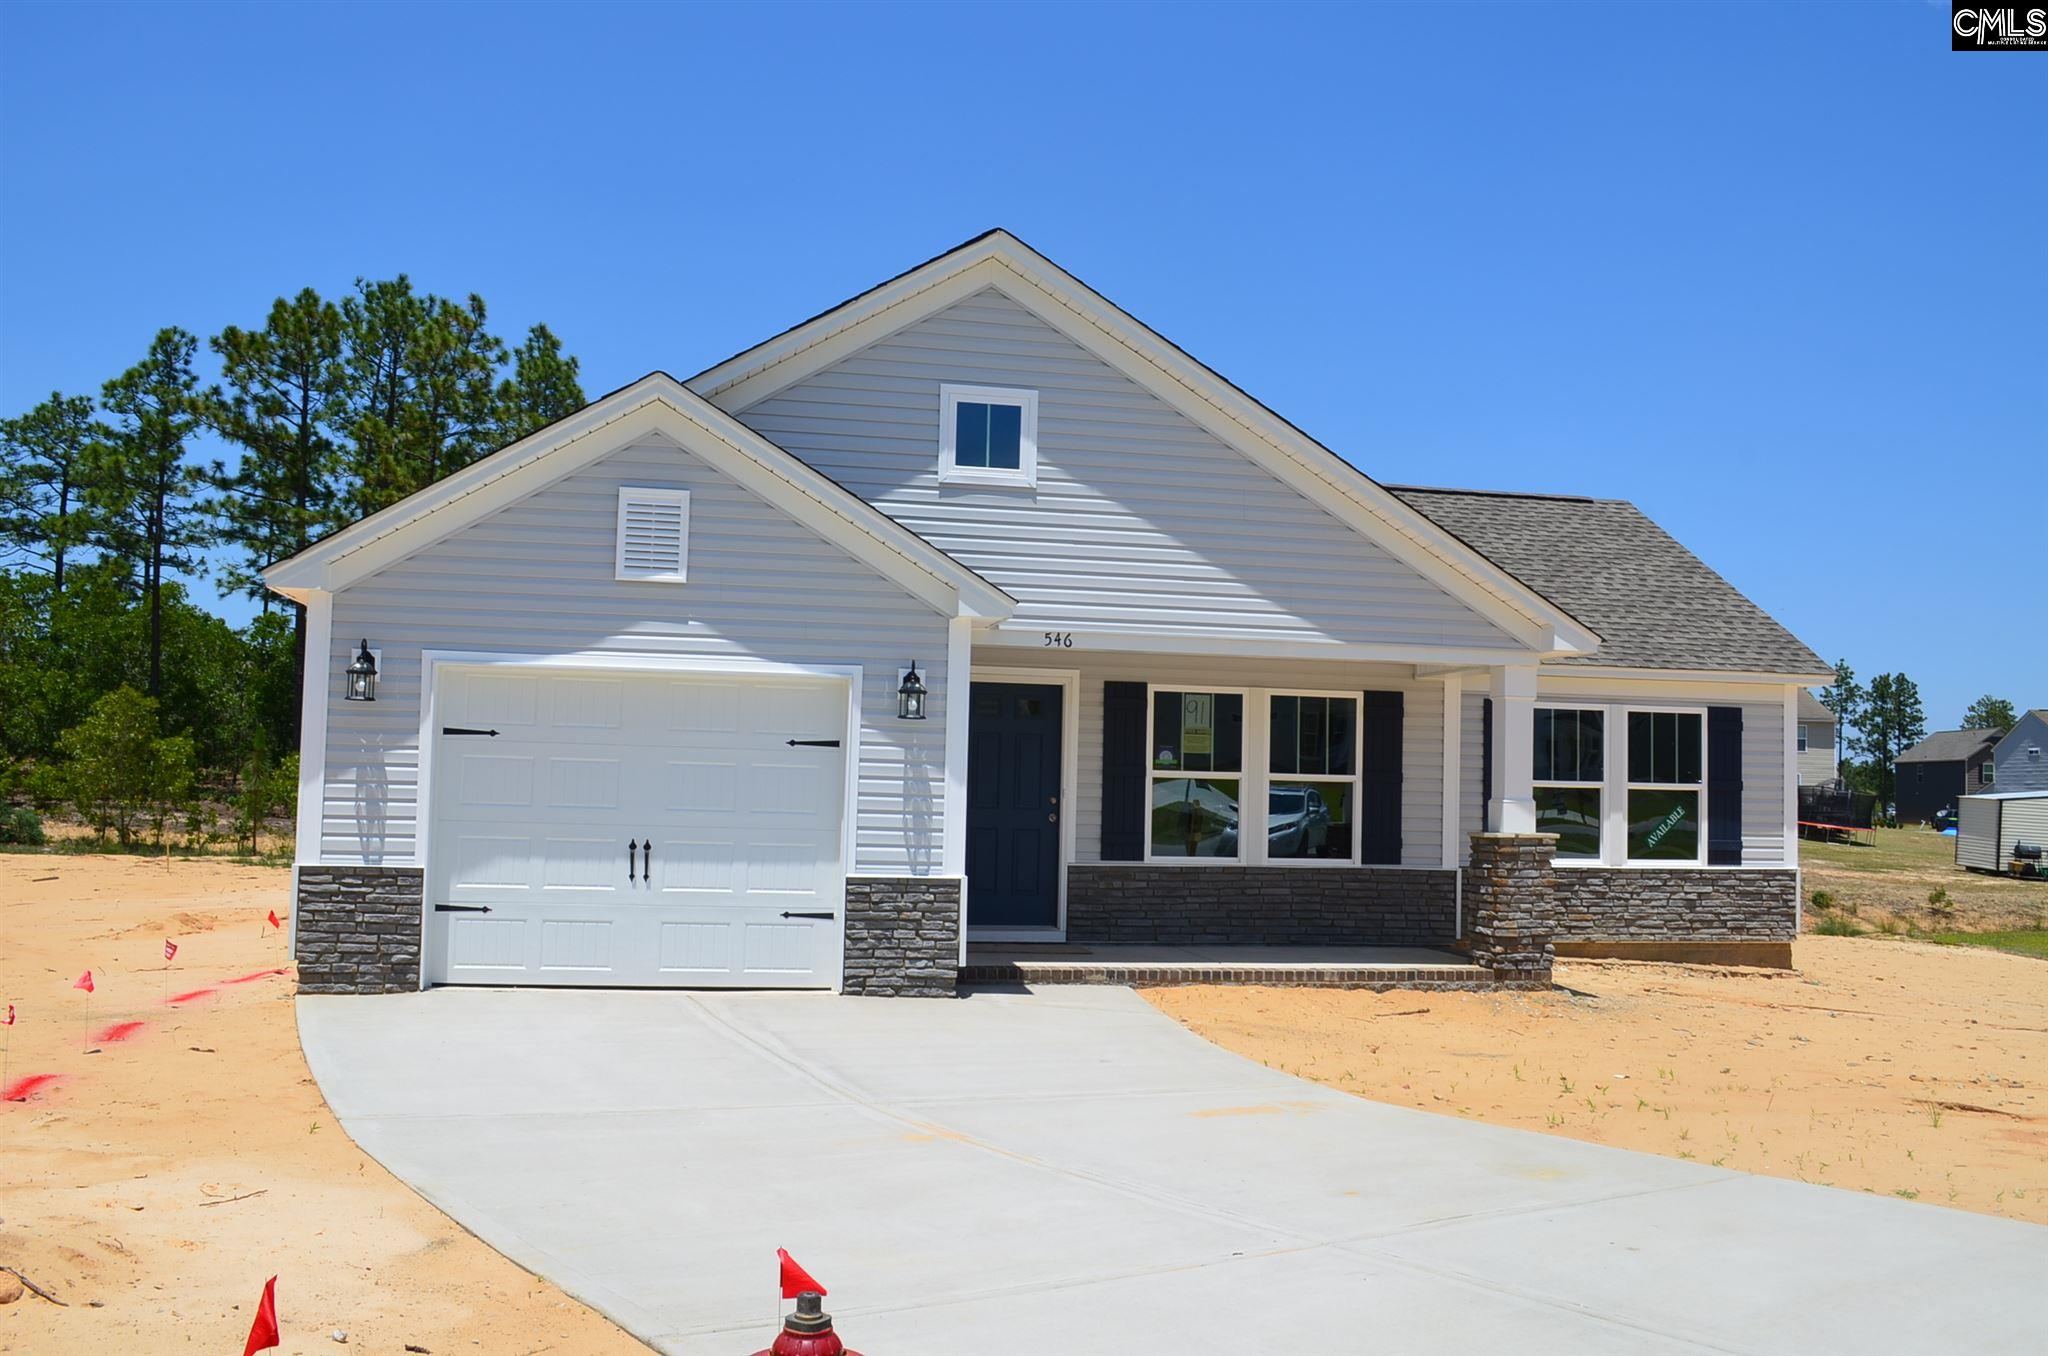 546 Lawndale Gaston, SC 29053